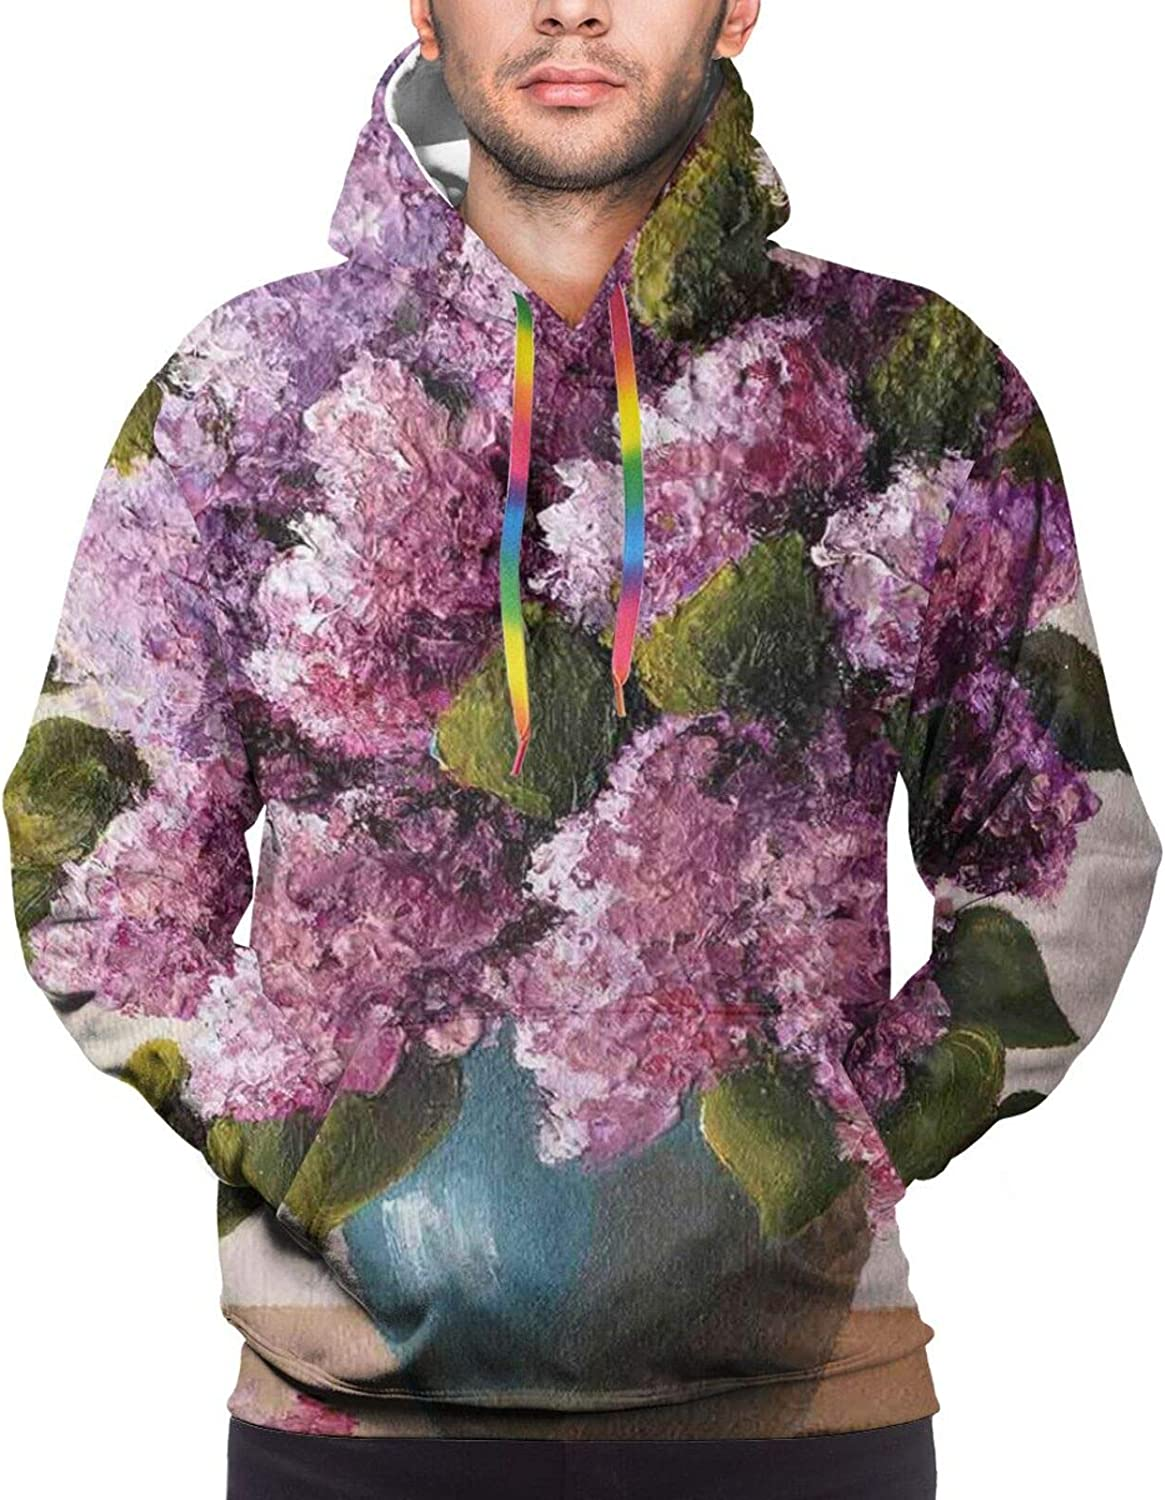 Men's Hoodies Sweatshirts,Oil Artwork Cloud Wave Image with Ombre Seem Colored Contemporary Artwork Print